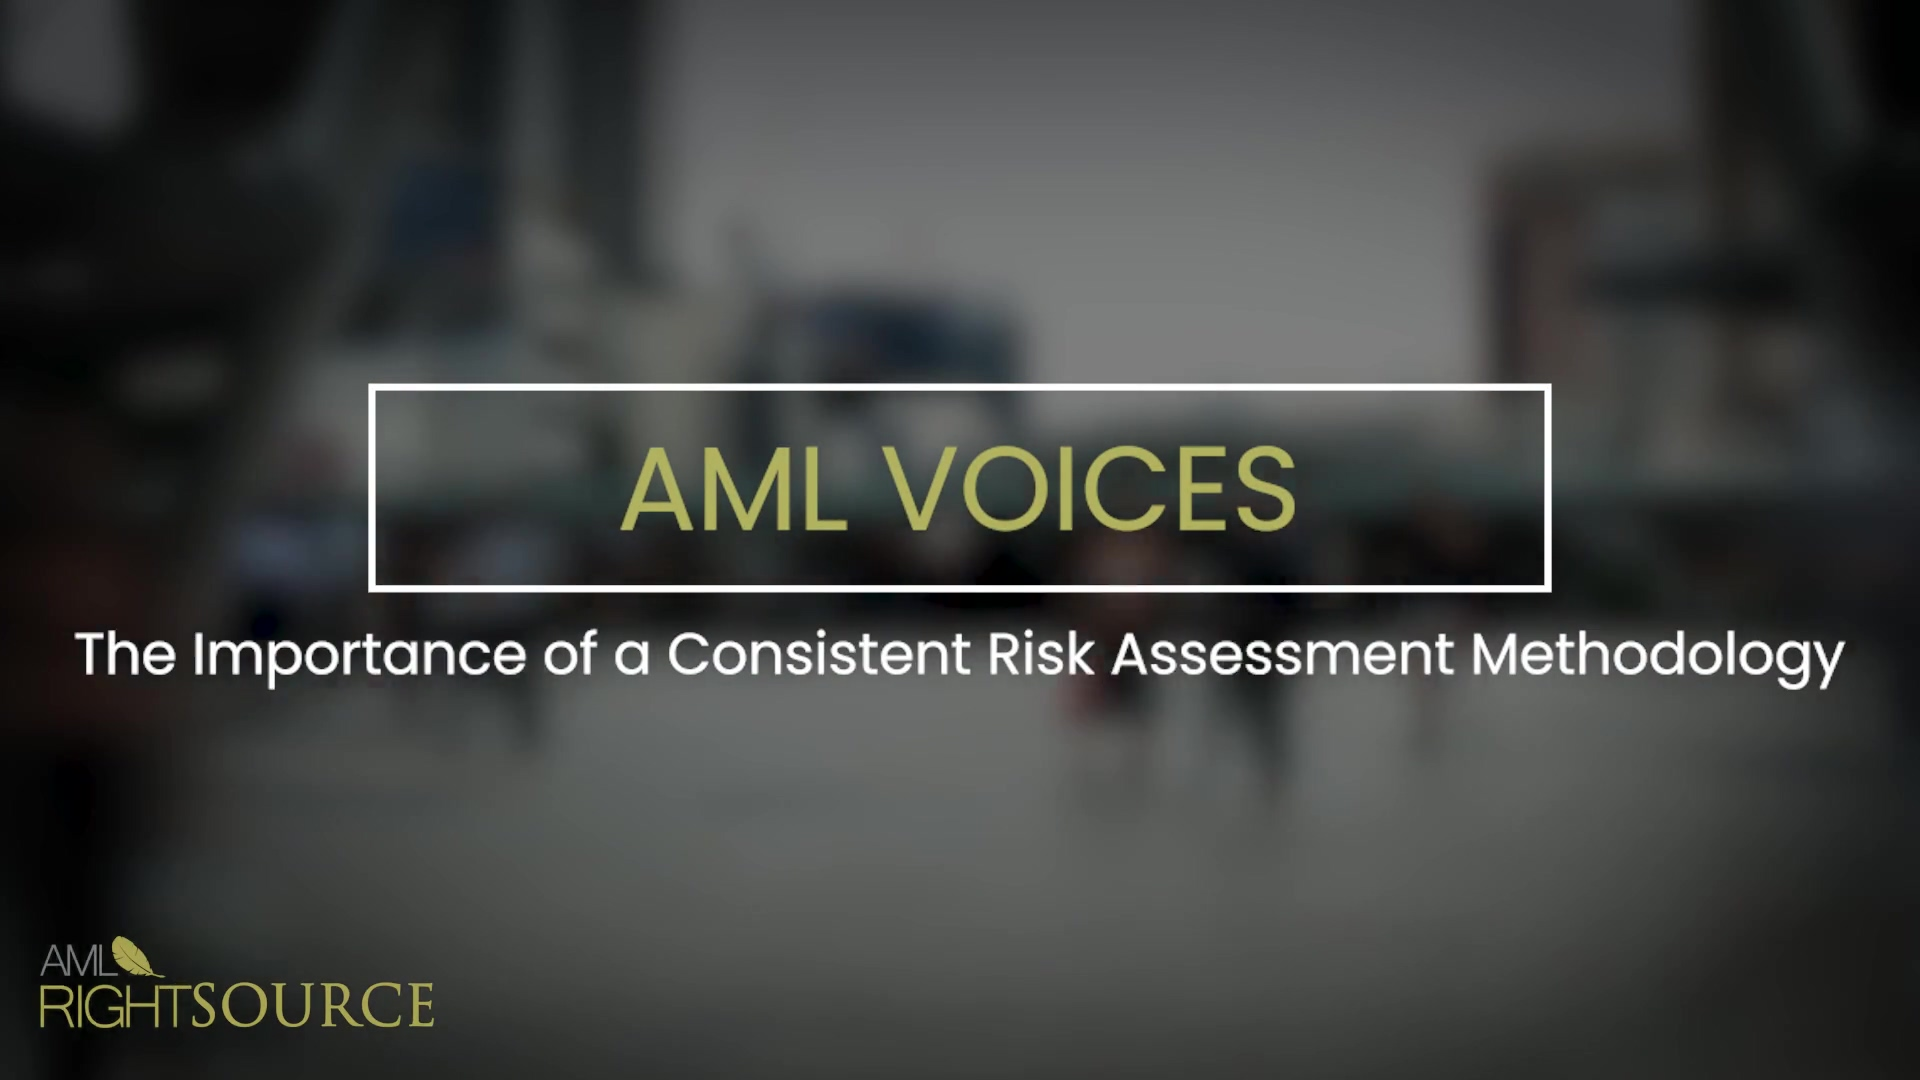 The Importance of a Consistent Risk Assessment Methodology